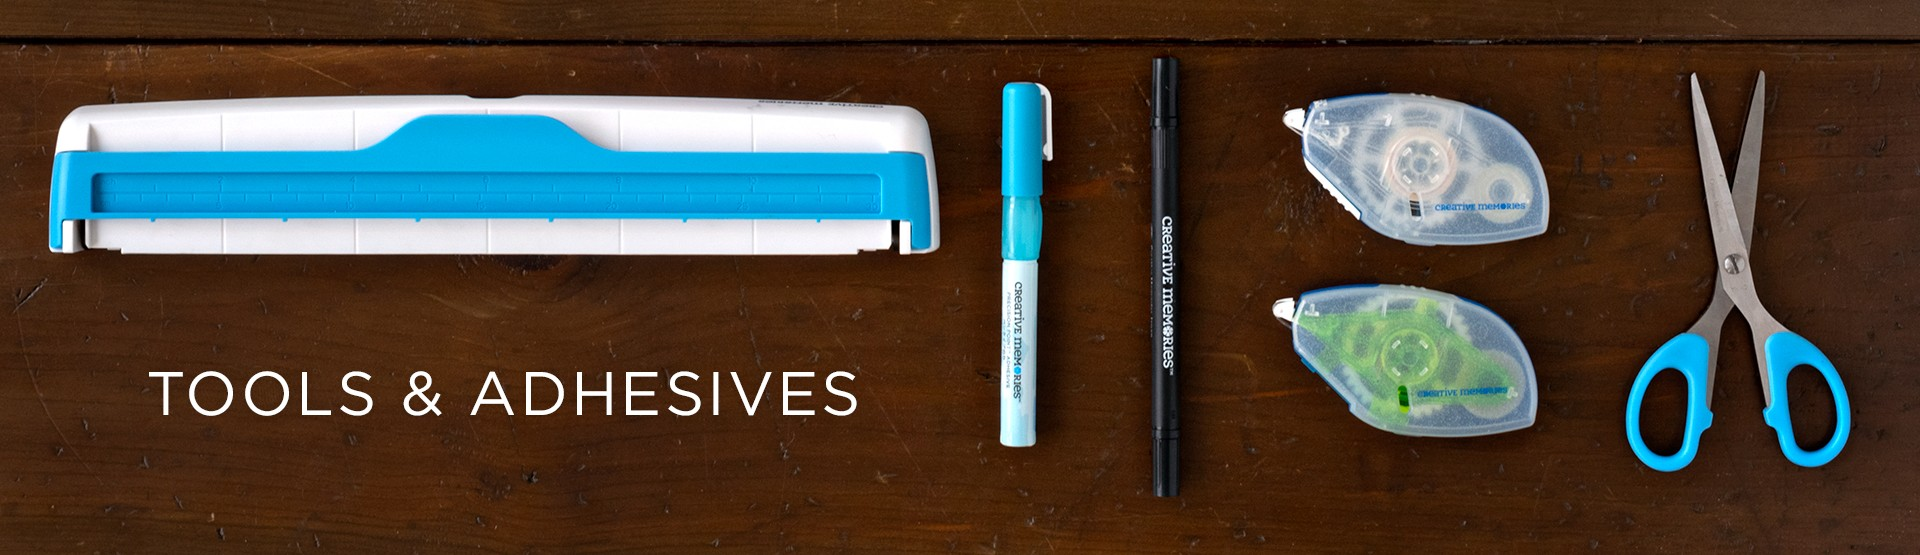 Tools, Adhesives, Storage & Pens